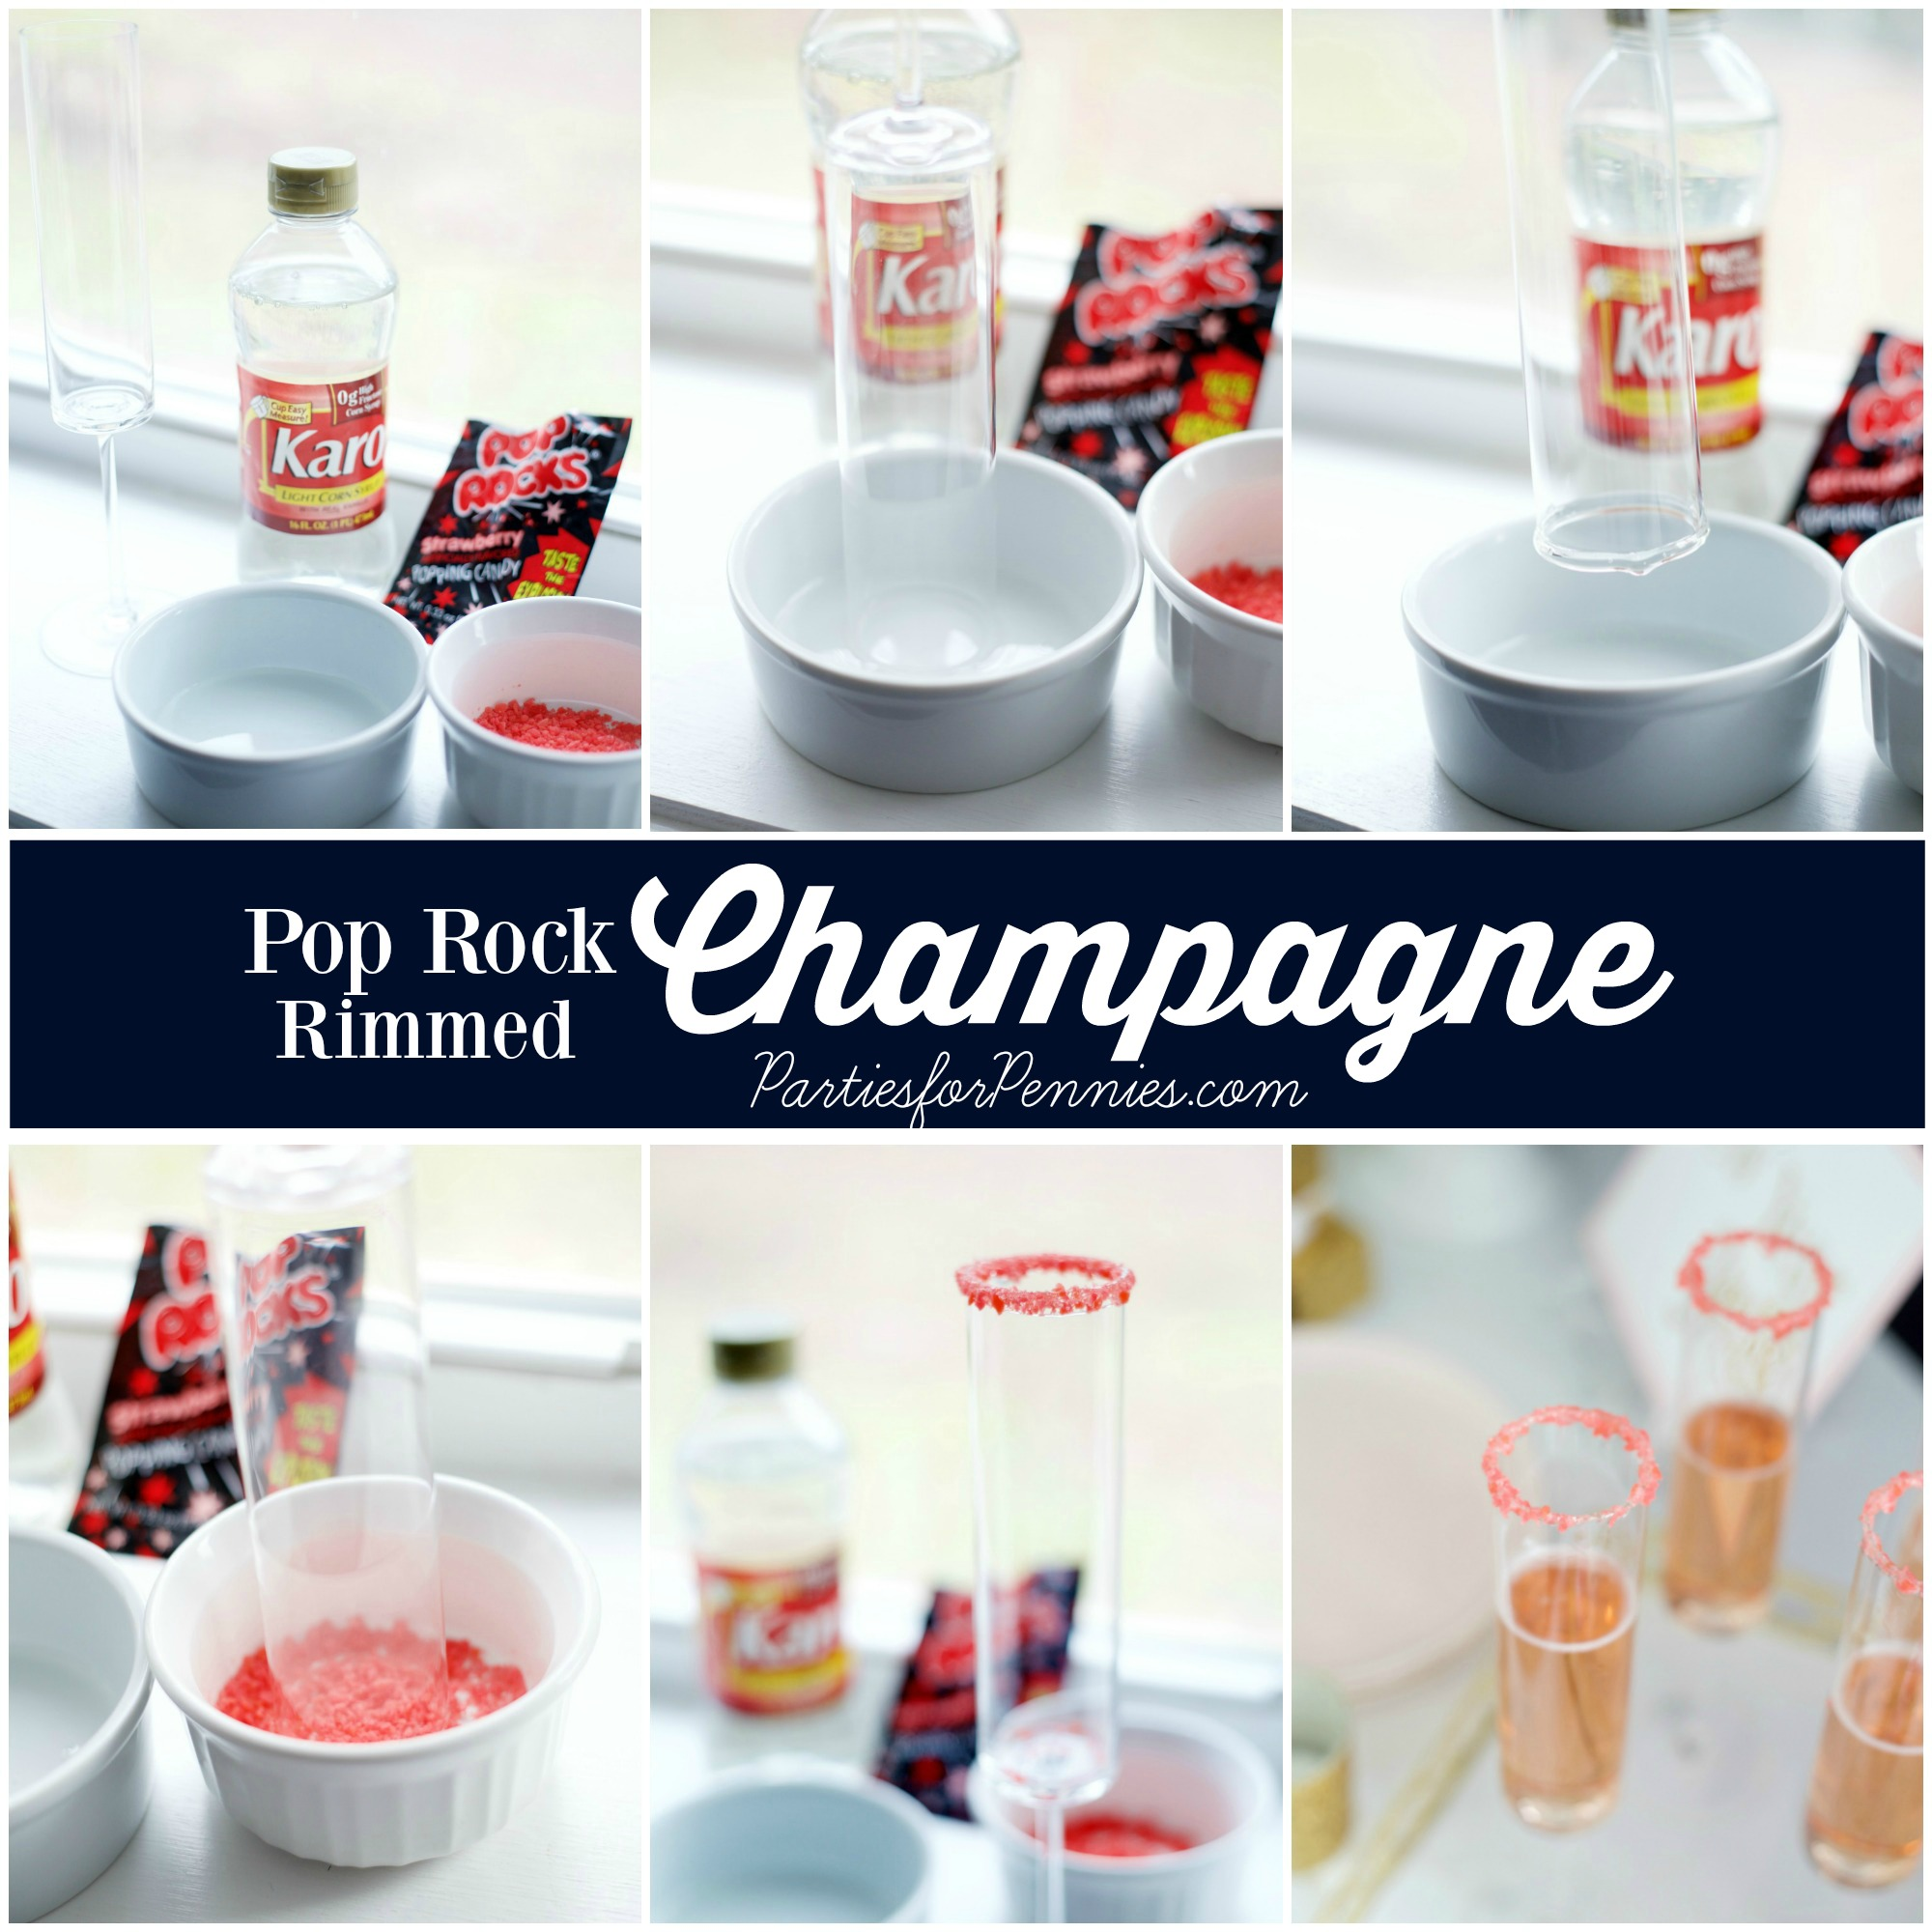 6 Budget-Friendly New Year's Eve Party Ideas by PartiesforPennies.com | Pop Rock Rimmed Champagne |Drink Recipe, NYE, Navy and Pink,